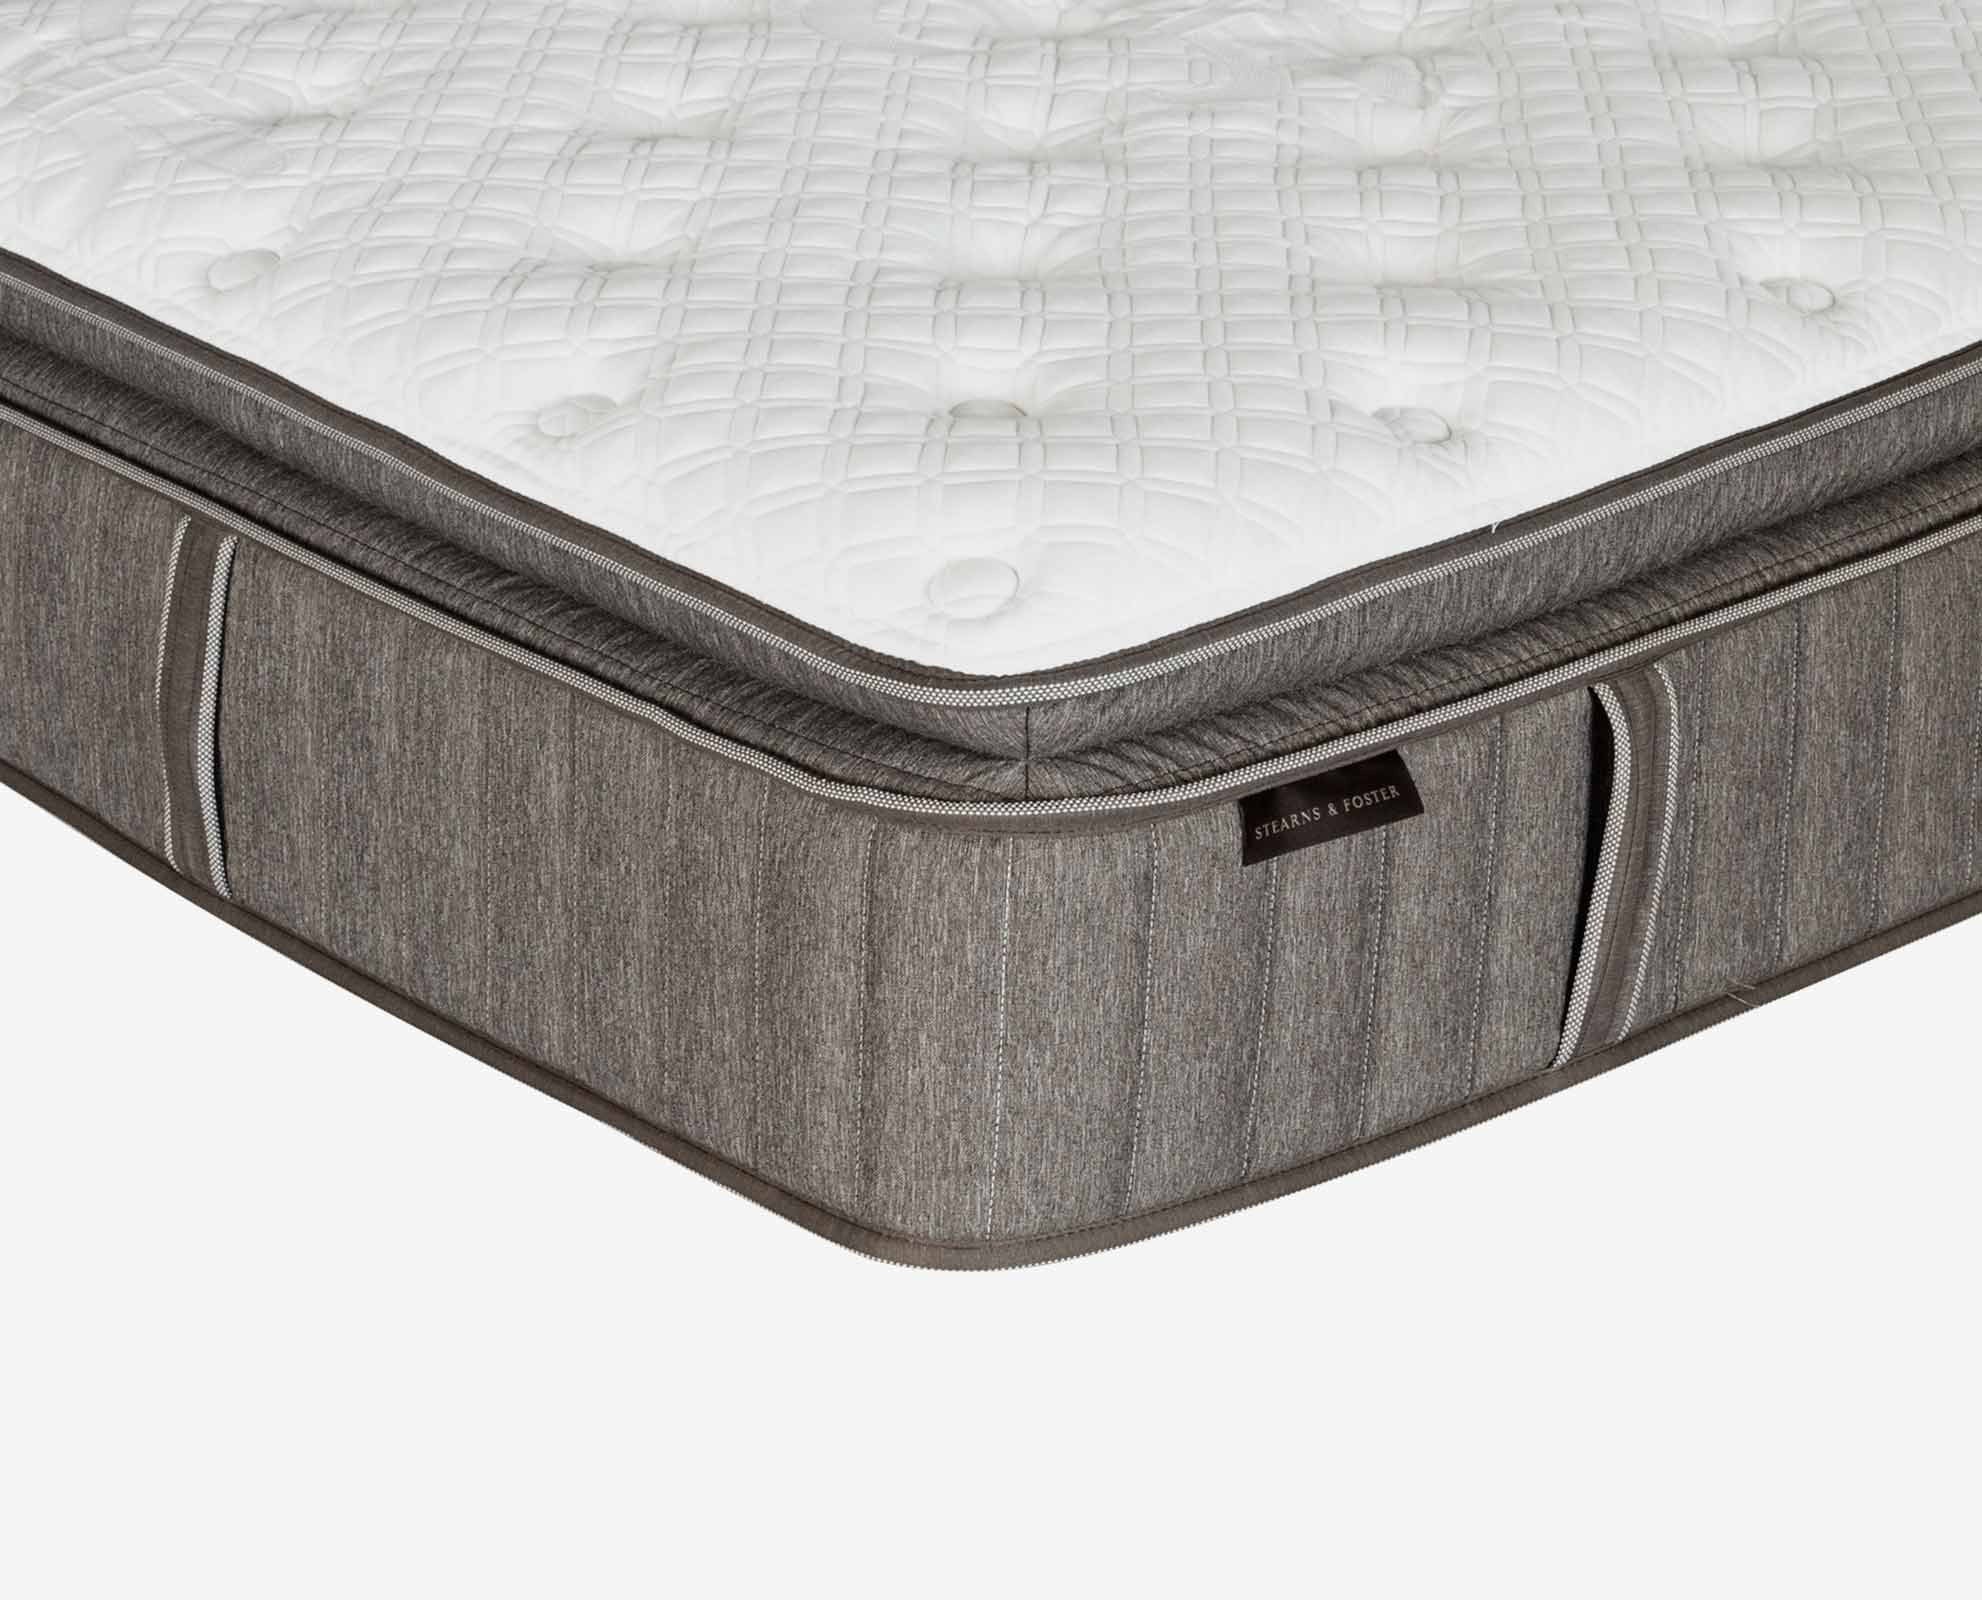 Supportive ergonomic comfort mattress